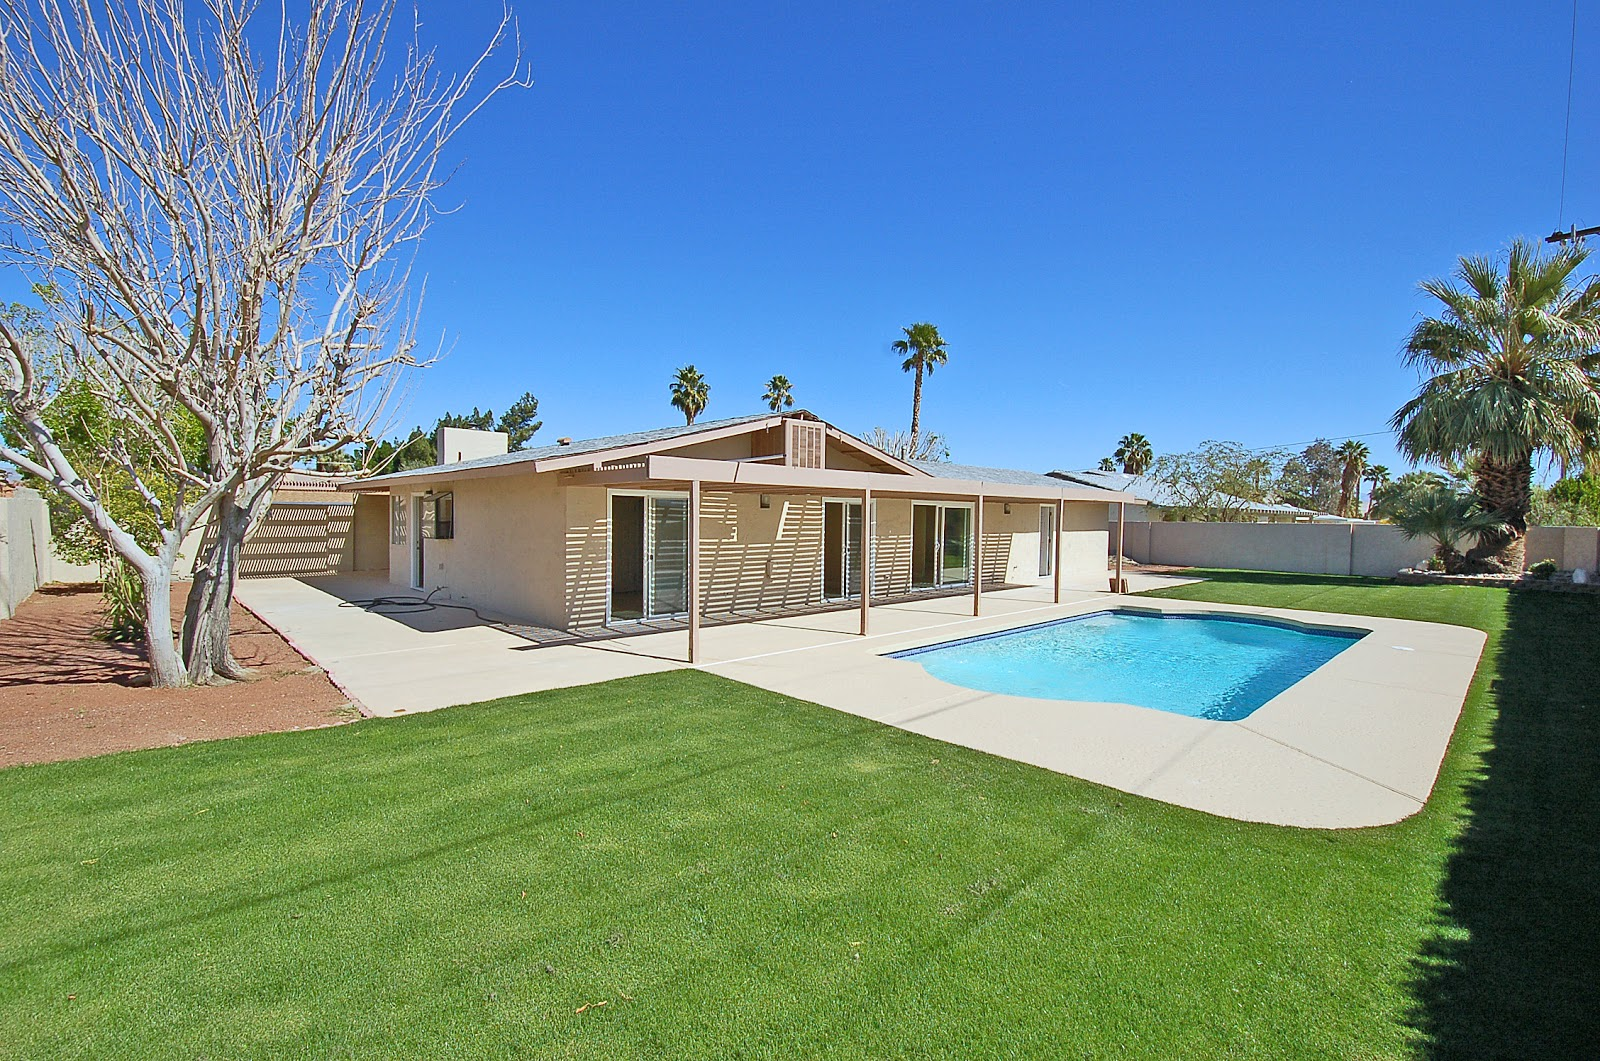 Houses For Sale Pool Of Russell Hill Palm Springs Area Real Estate